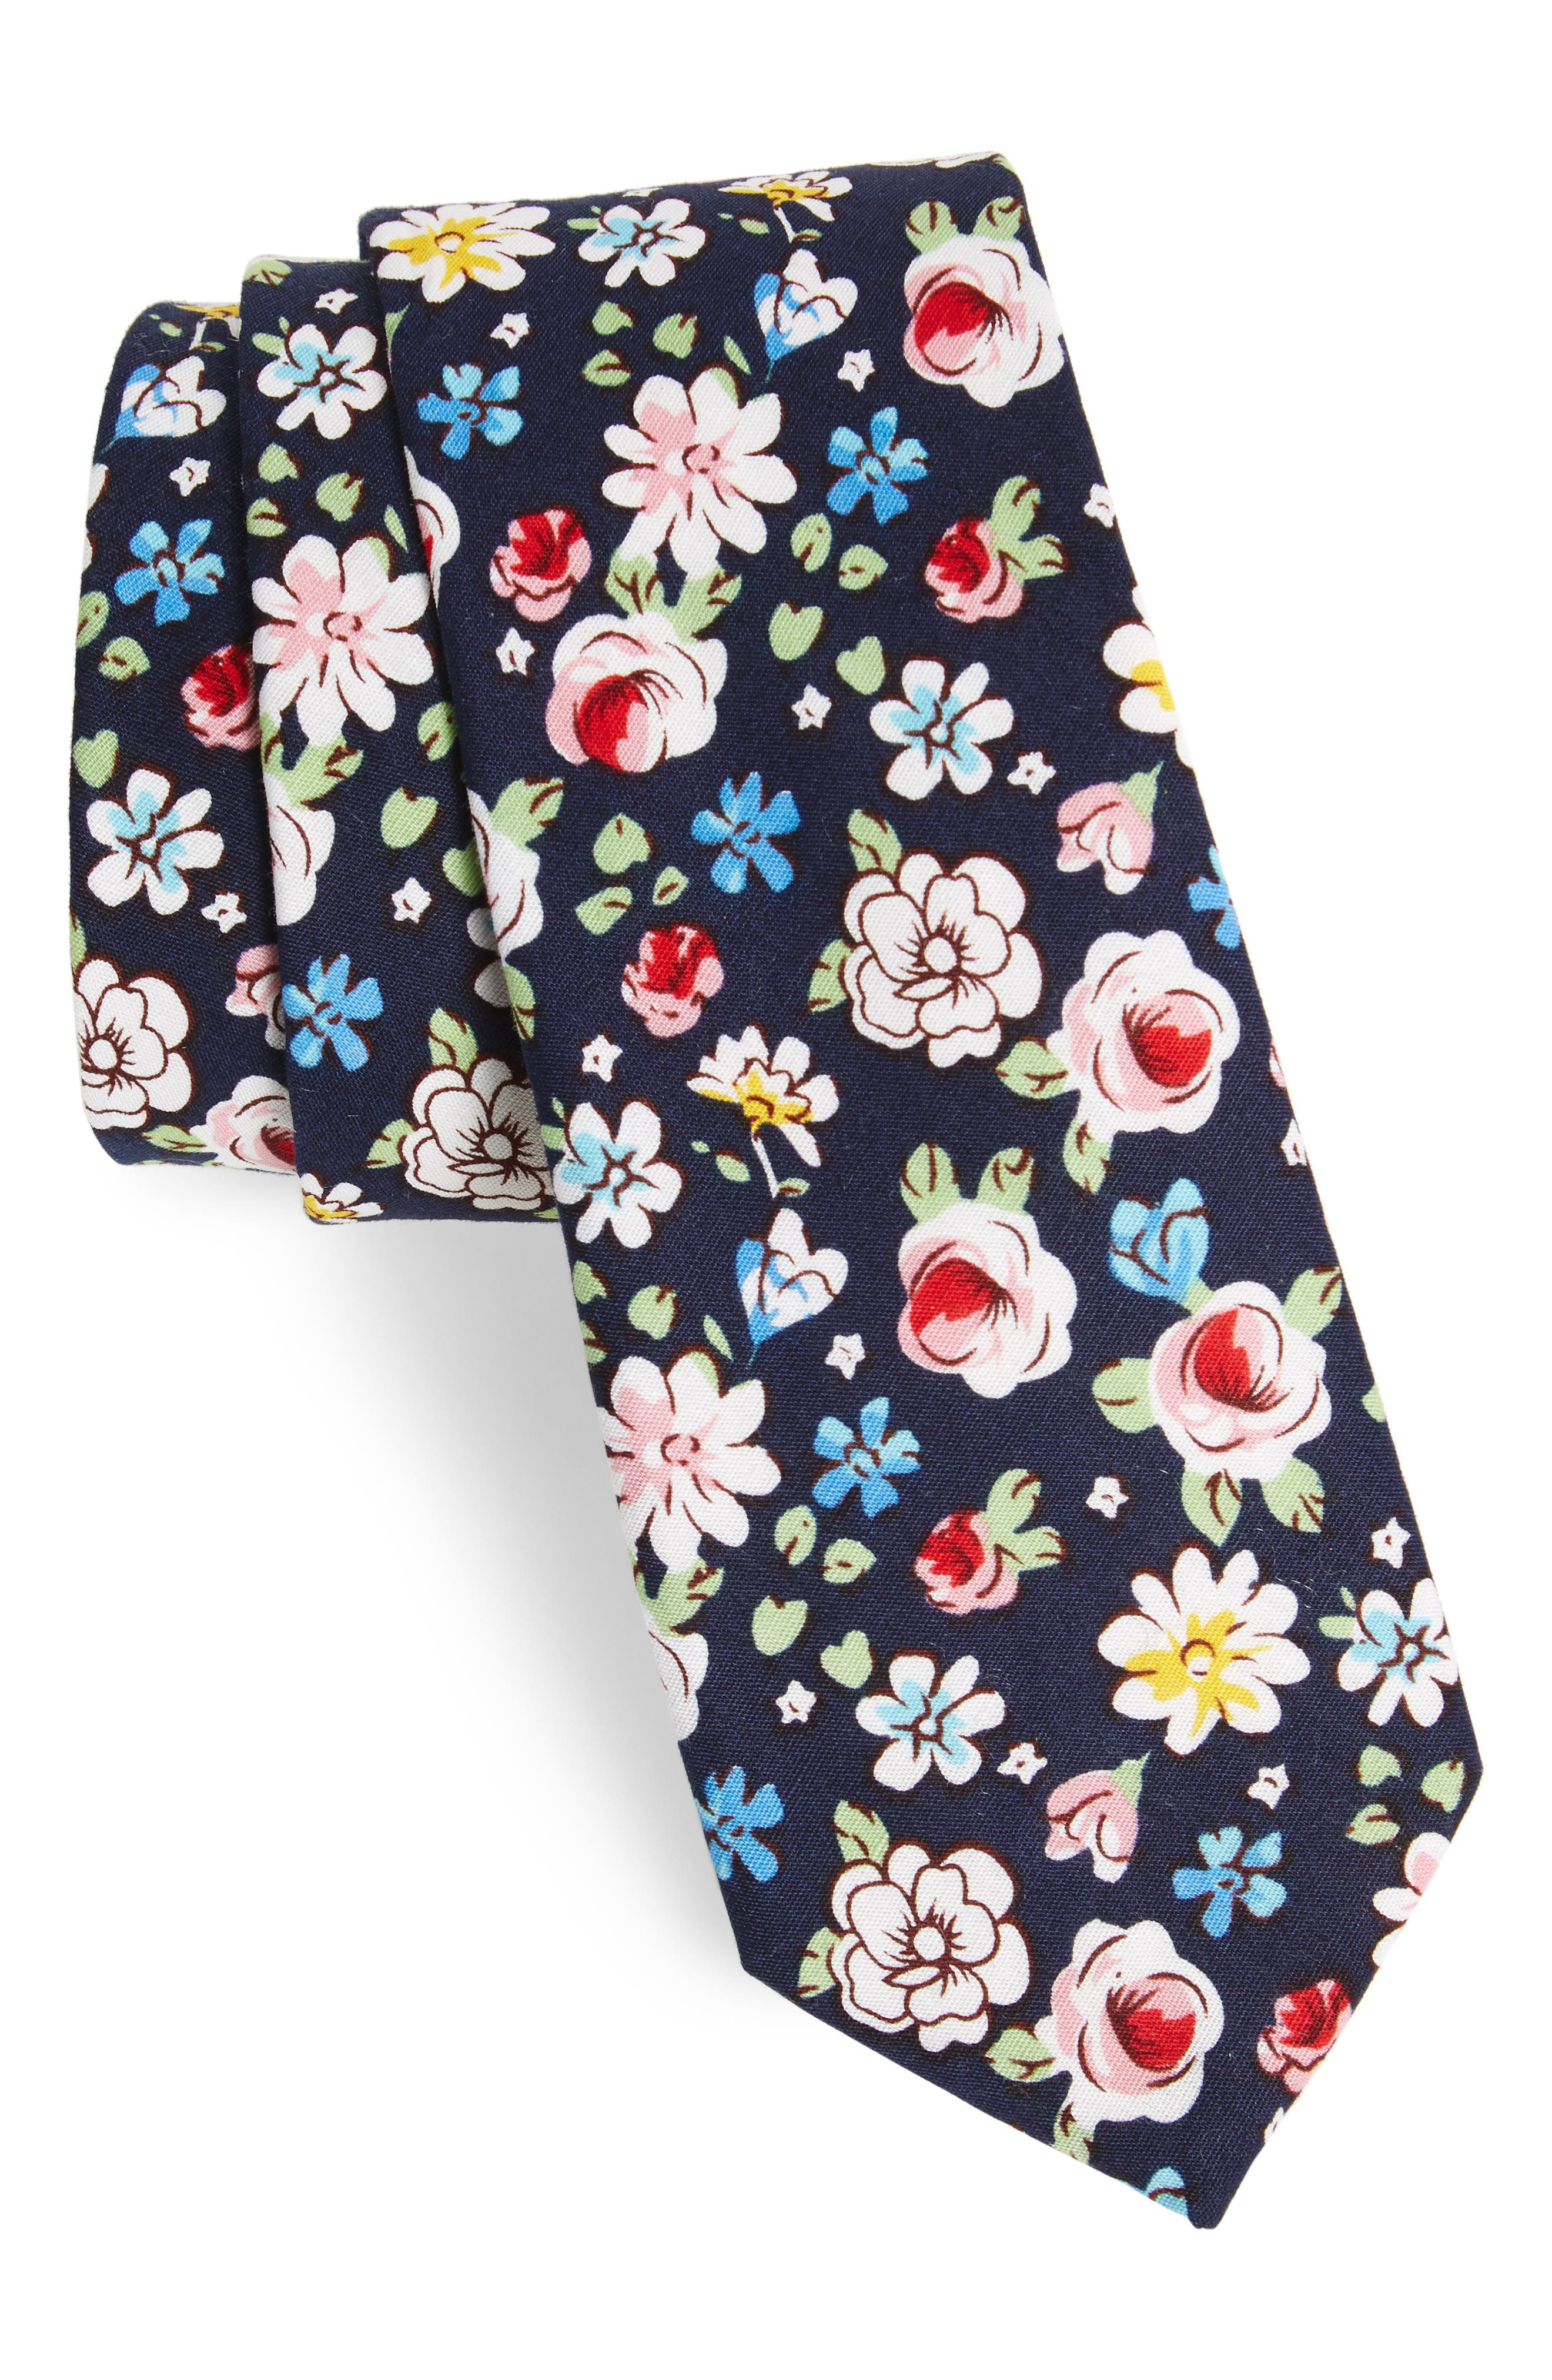 Alternate Image 1 Selected - Nordstrom Men's Shop Frenso Floral Cotton Skinny Tie